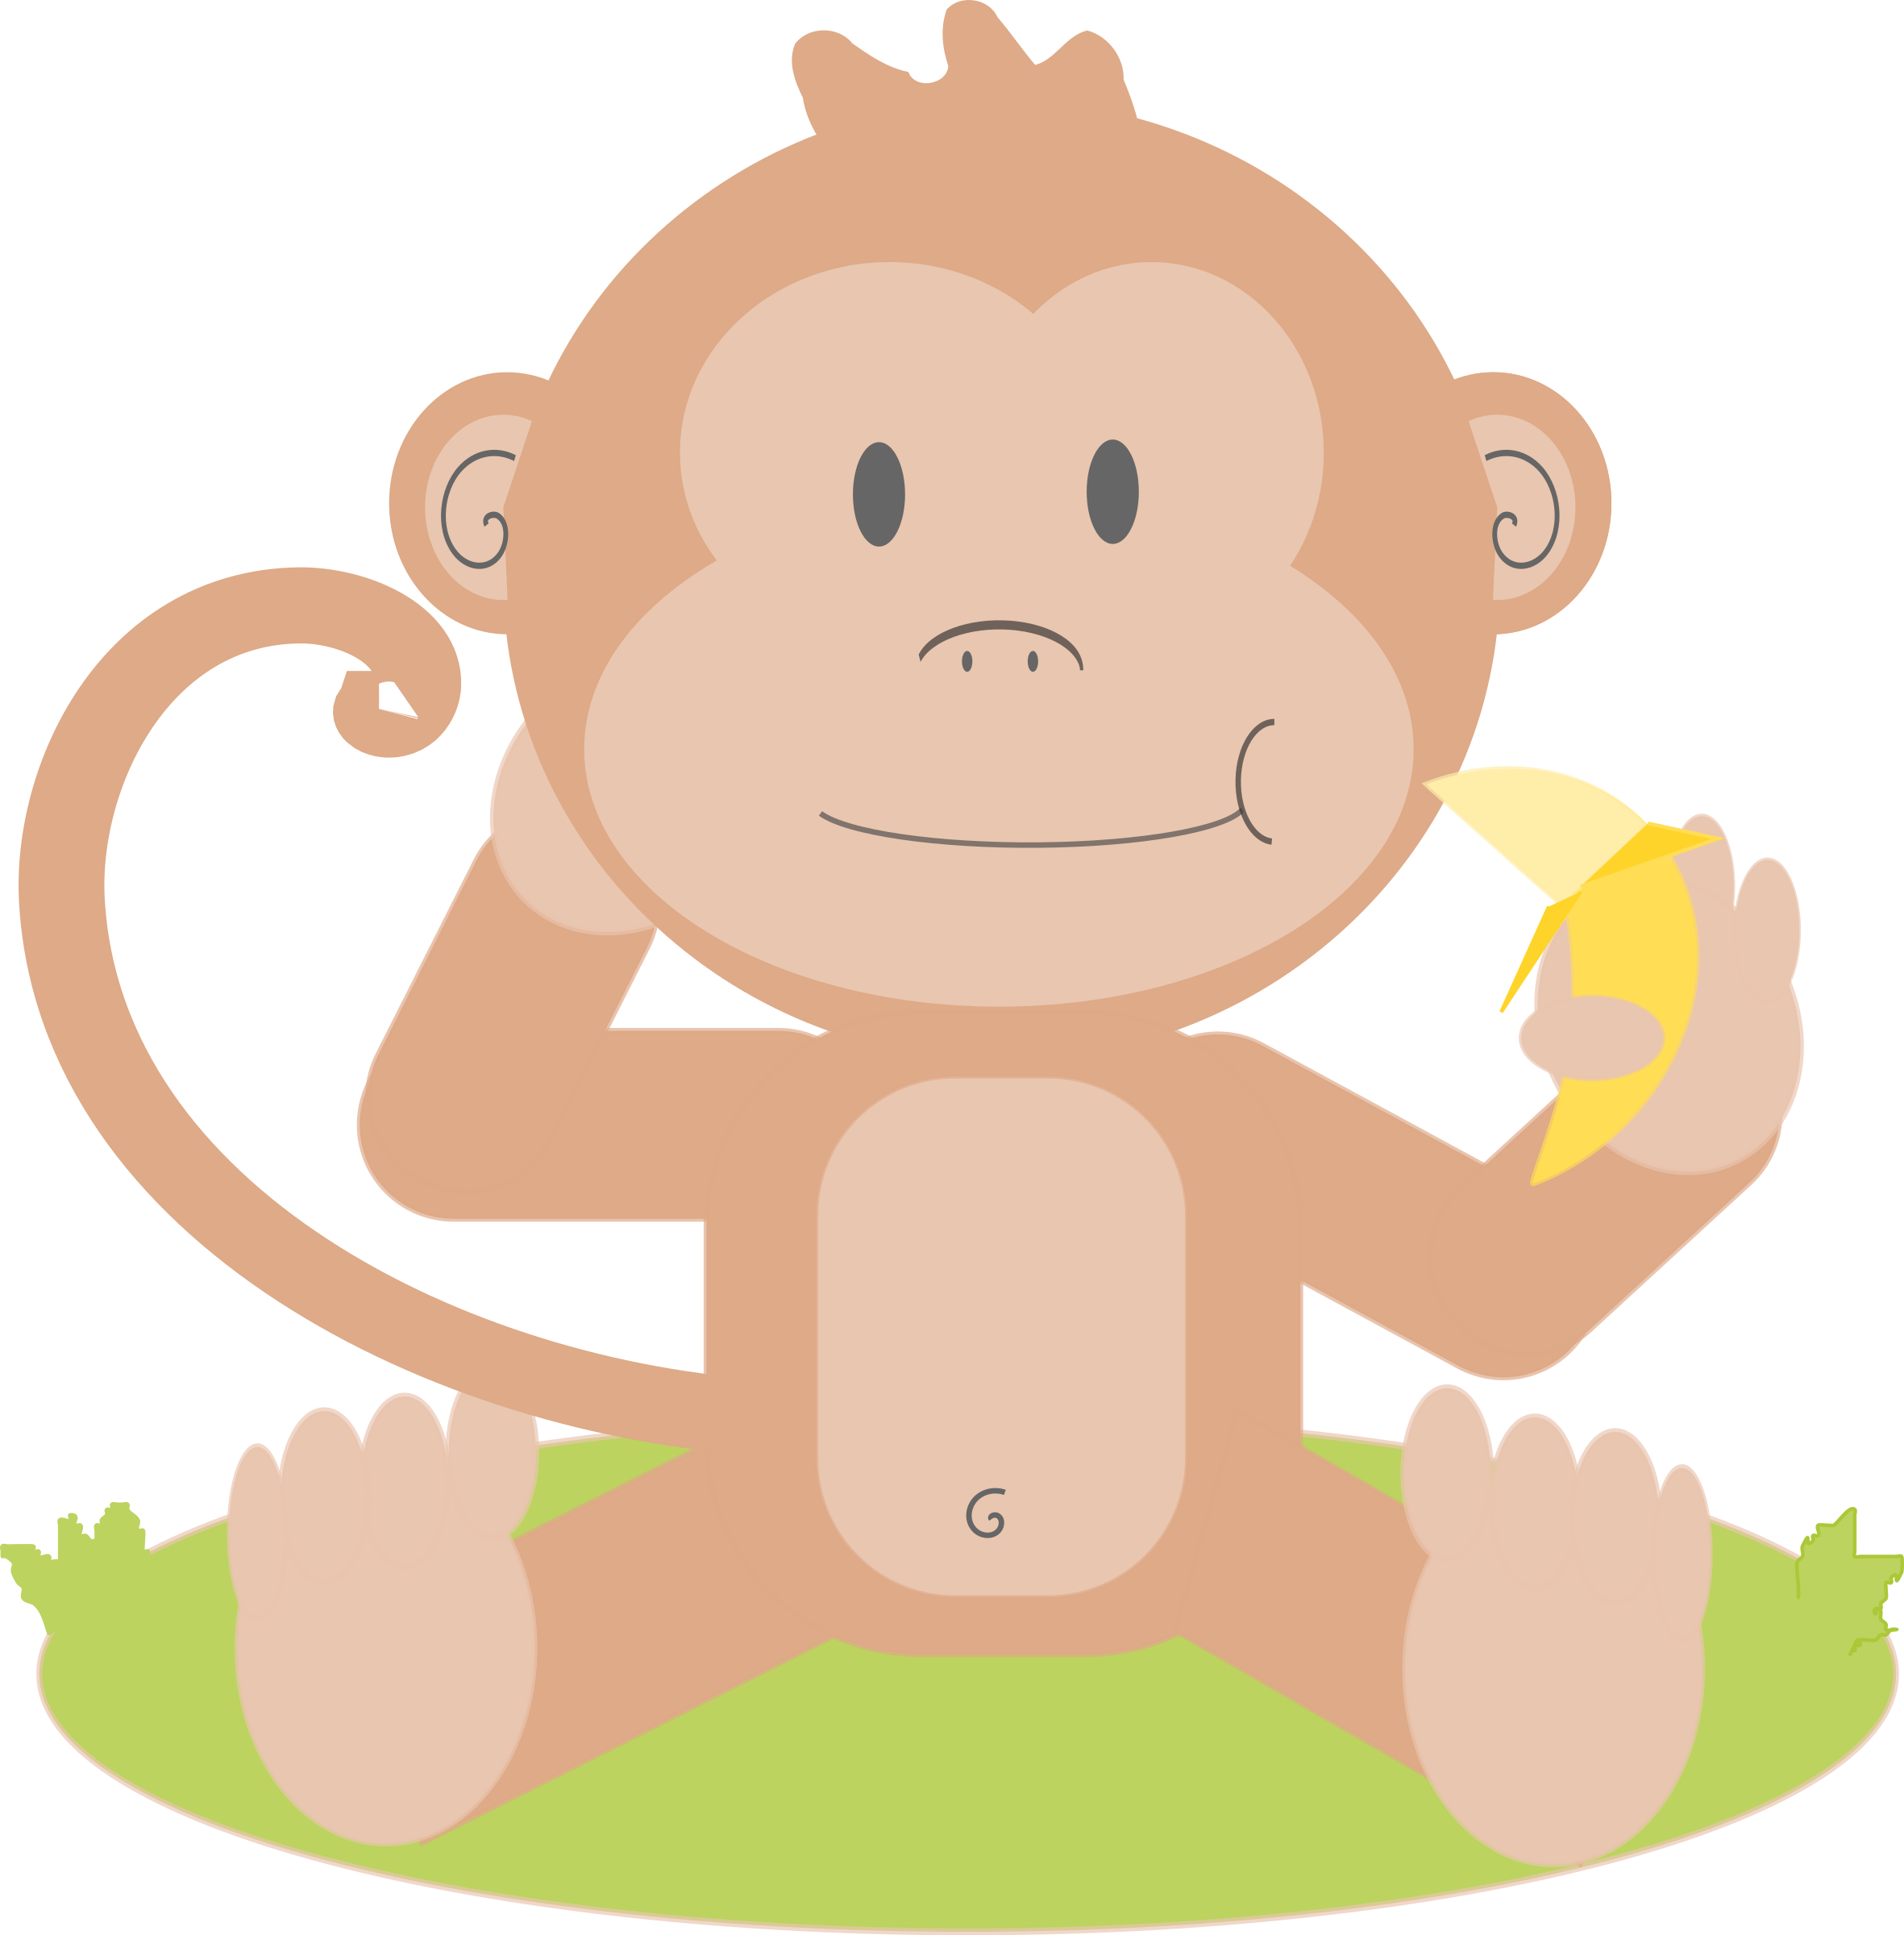 Monkeys eating bananas clipart png. Animated monkey log in